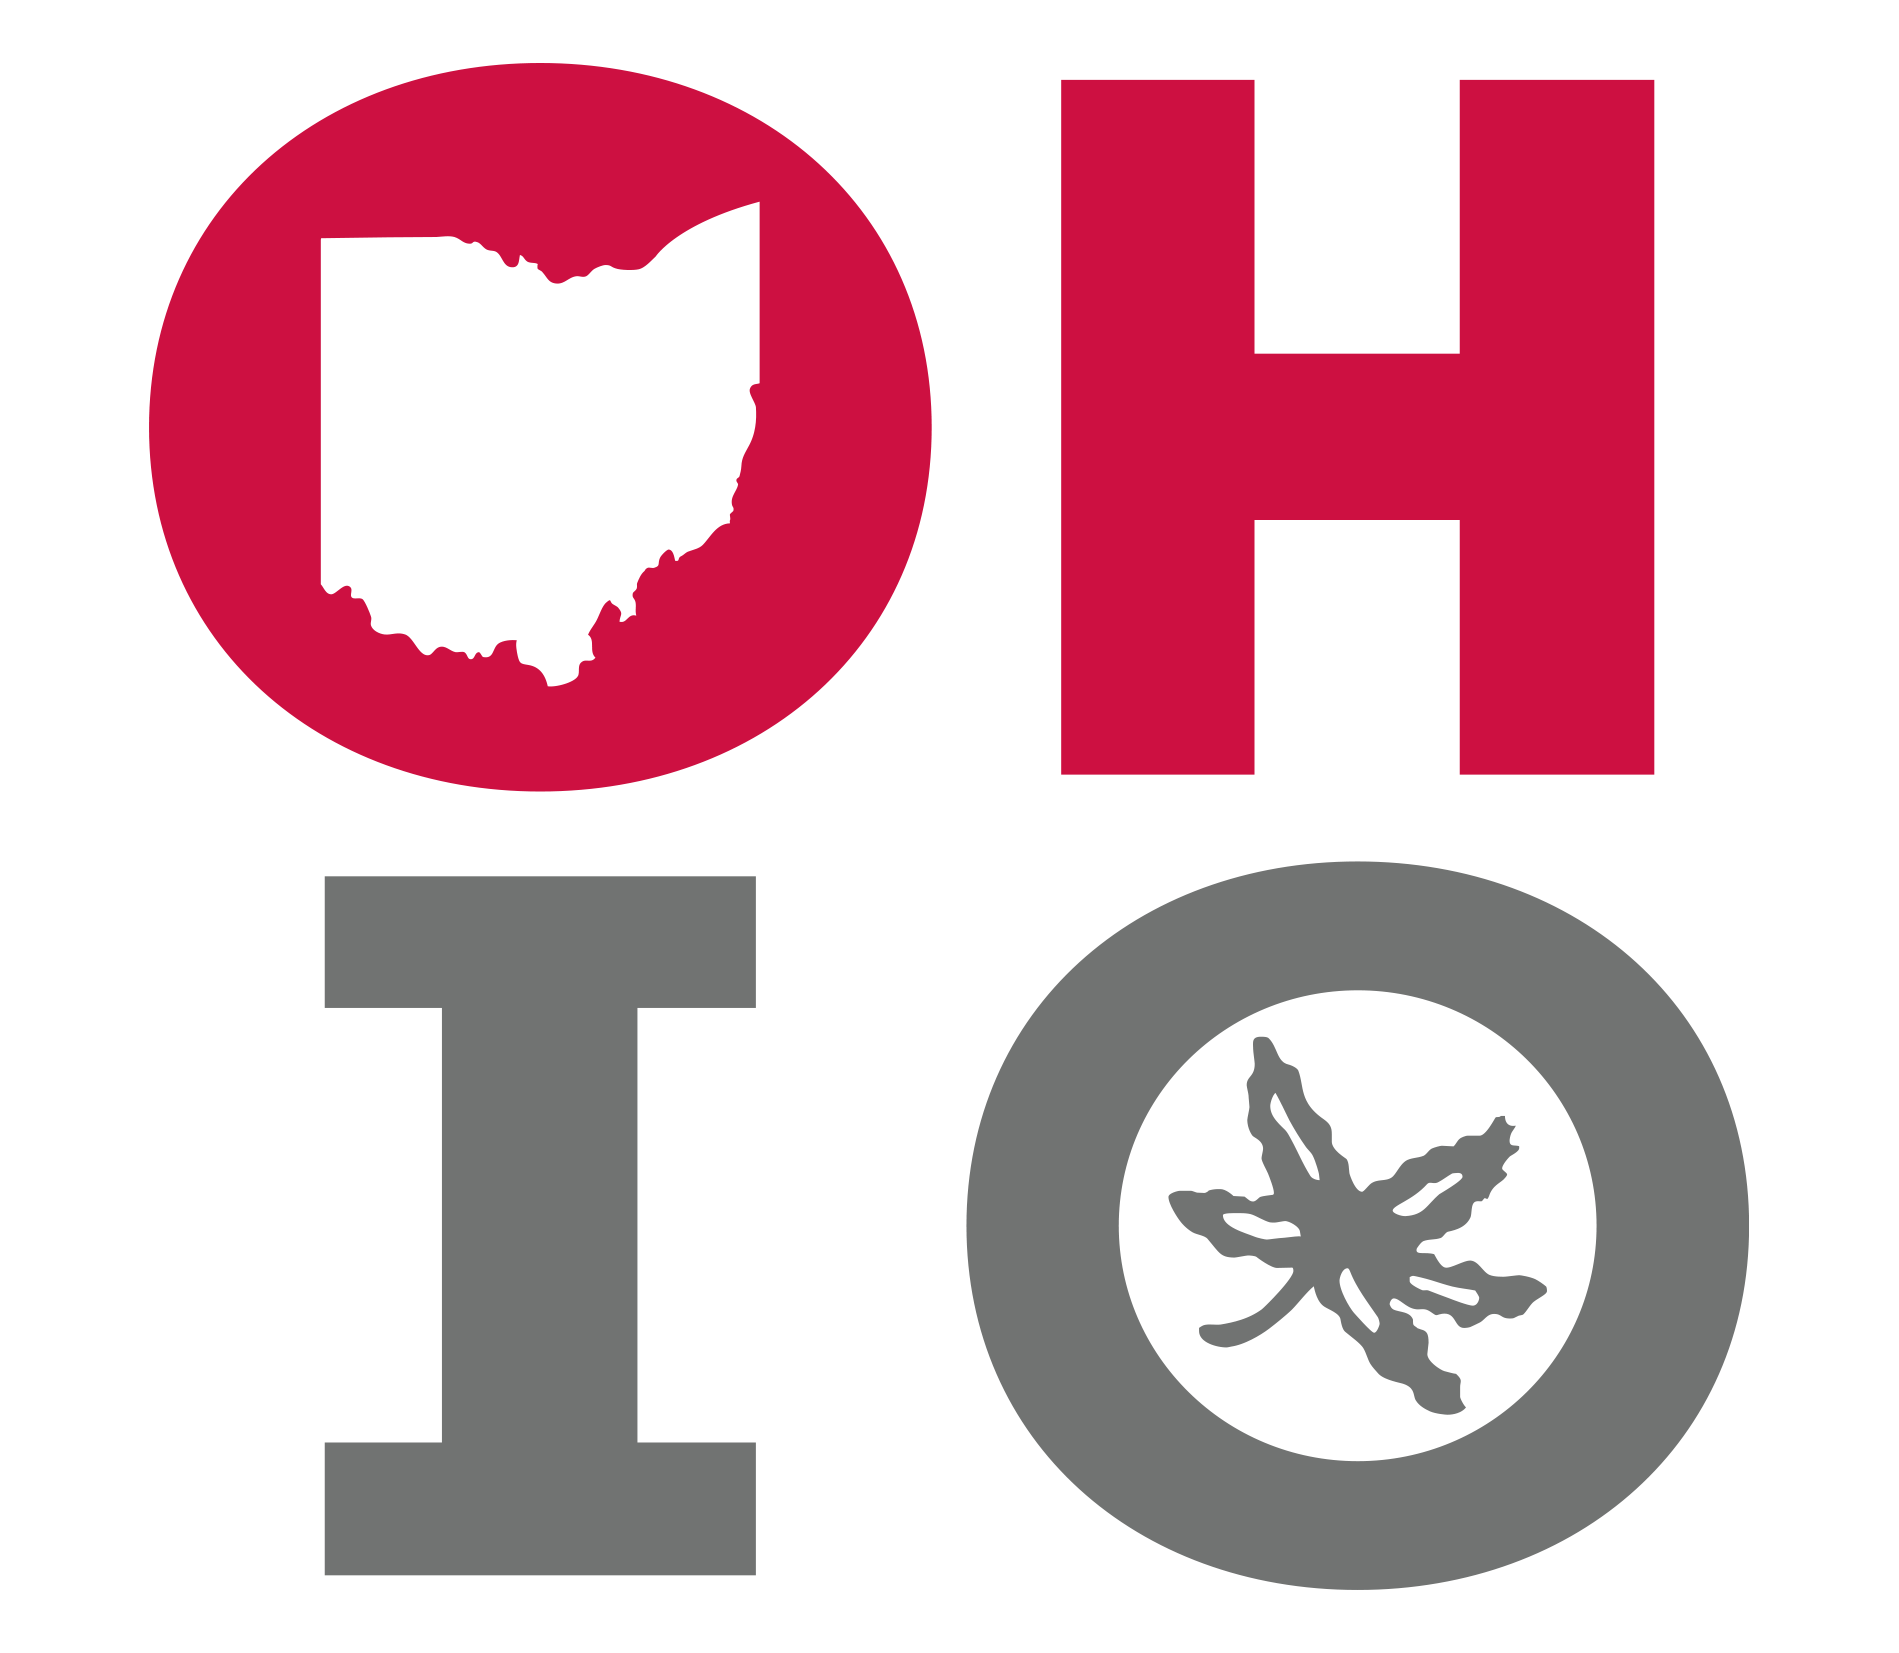 Use Ohio State Emojis To Root For The Buckeyes On Their Quest To The National Championship Ohio State Buckeyes Crafts Ohio State Wallpaper Buckeye Crafts